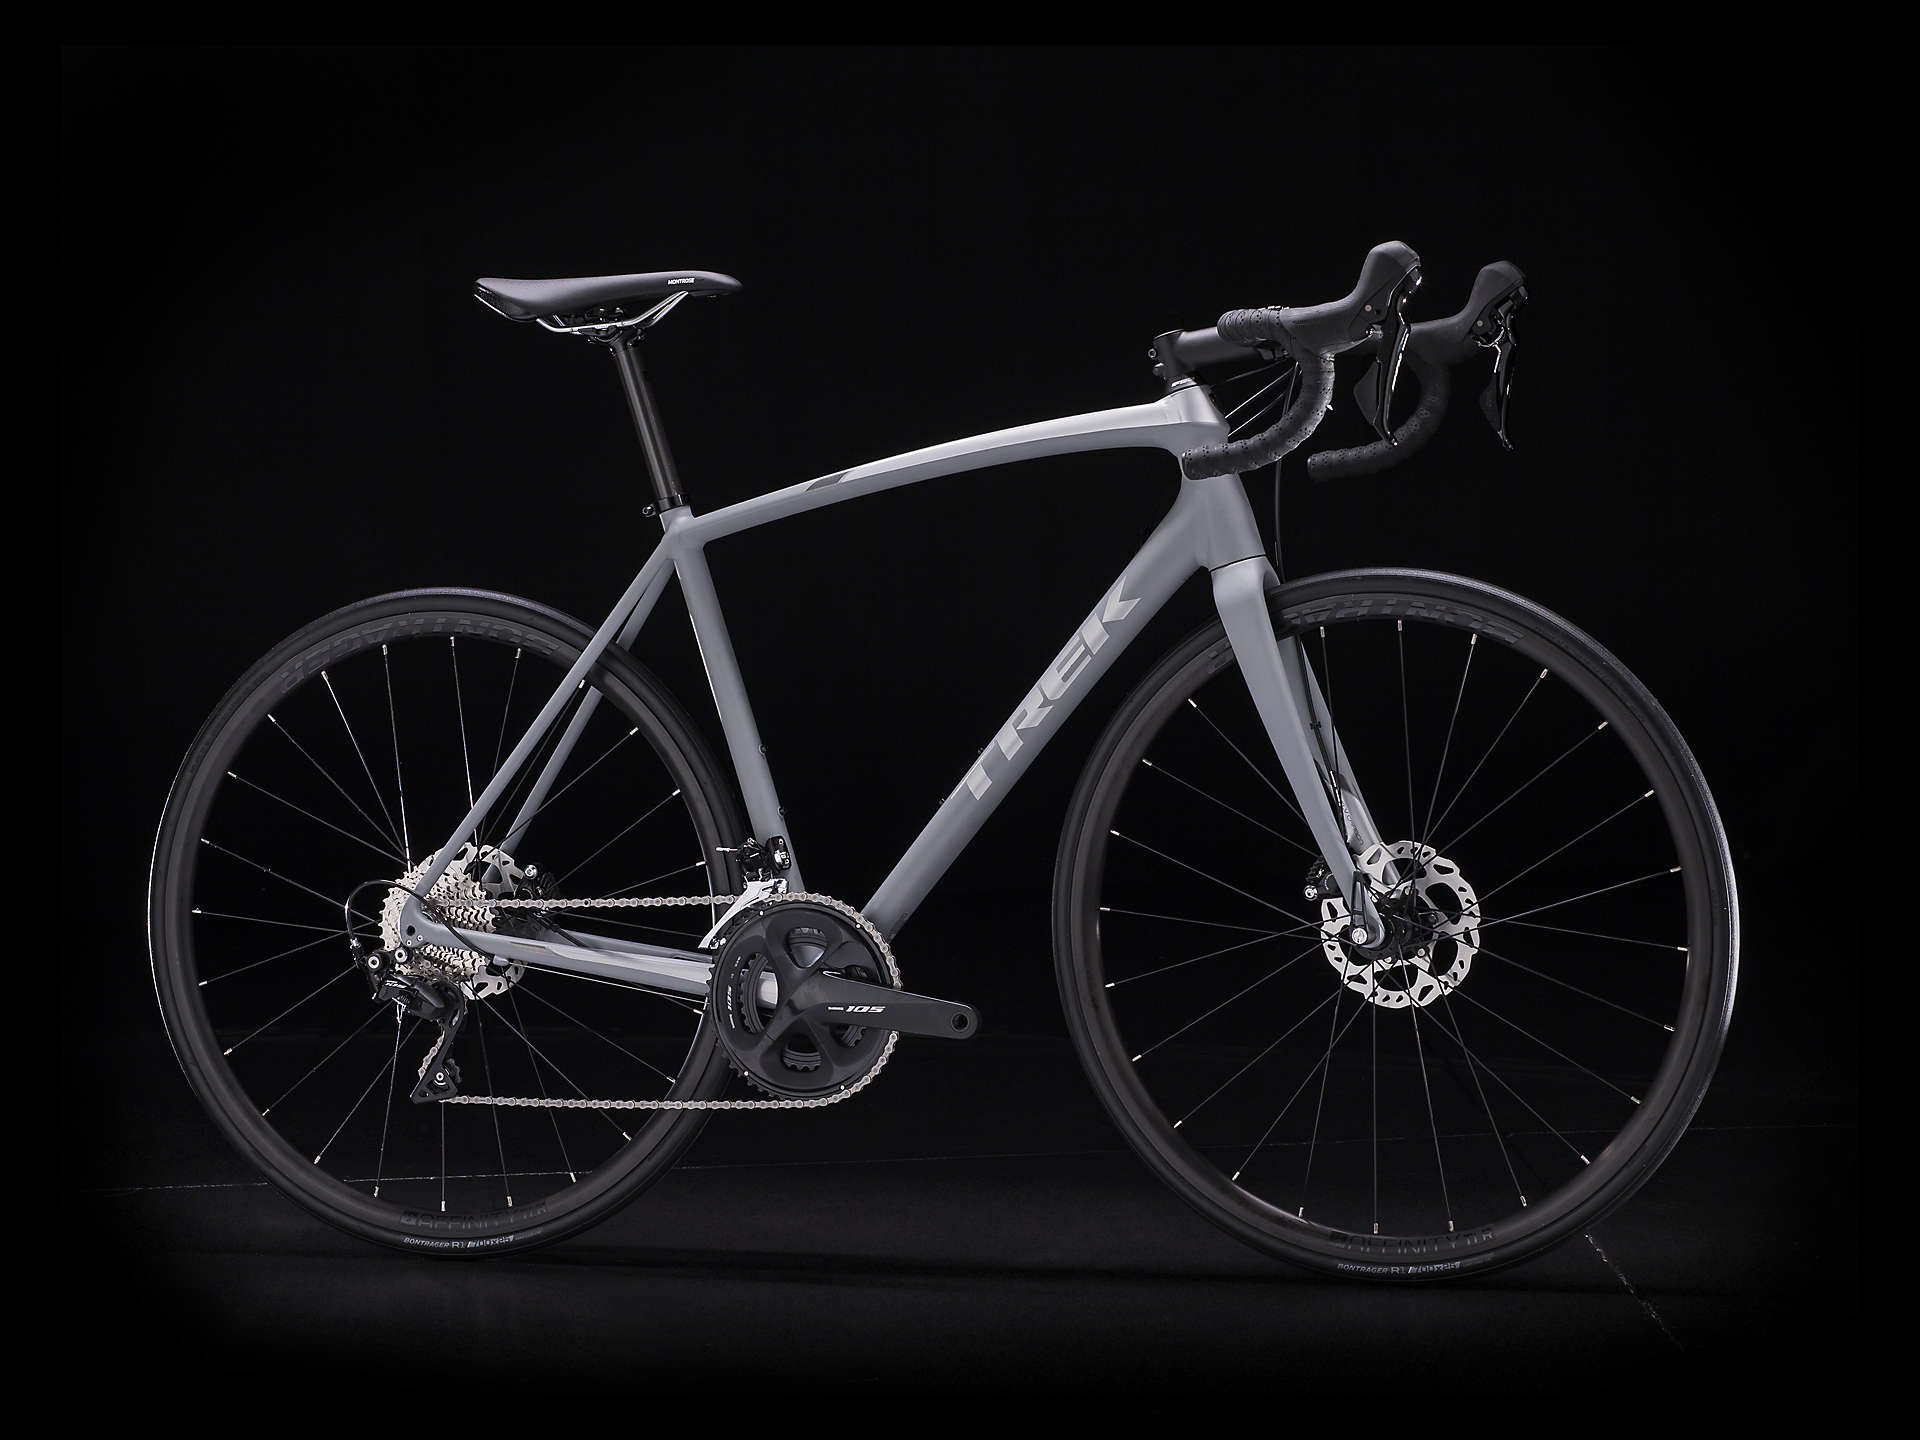 5bc609cdd82 The 2019 Trek Émonda ALR 5 Disc is a race-ready aluminium road bike with a  full Shimano 105 groupset including 105 hydraulic disc brakes and tubeless  ready ...